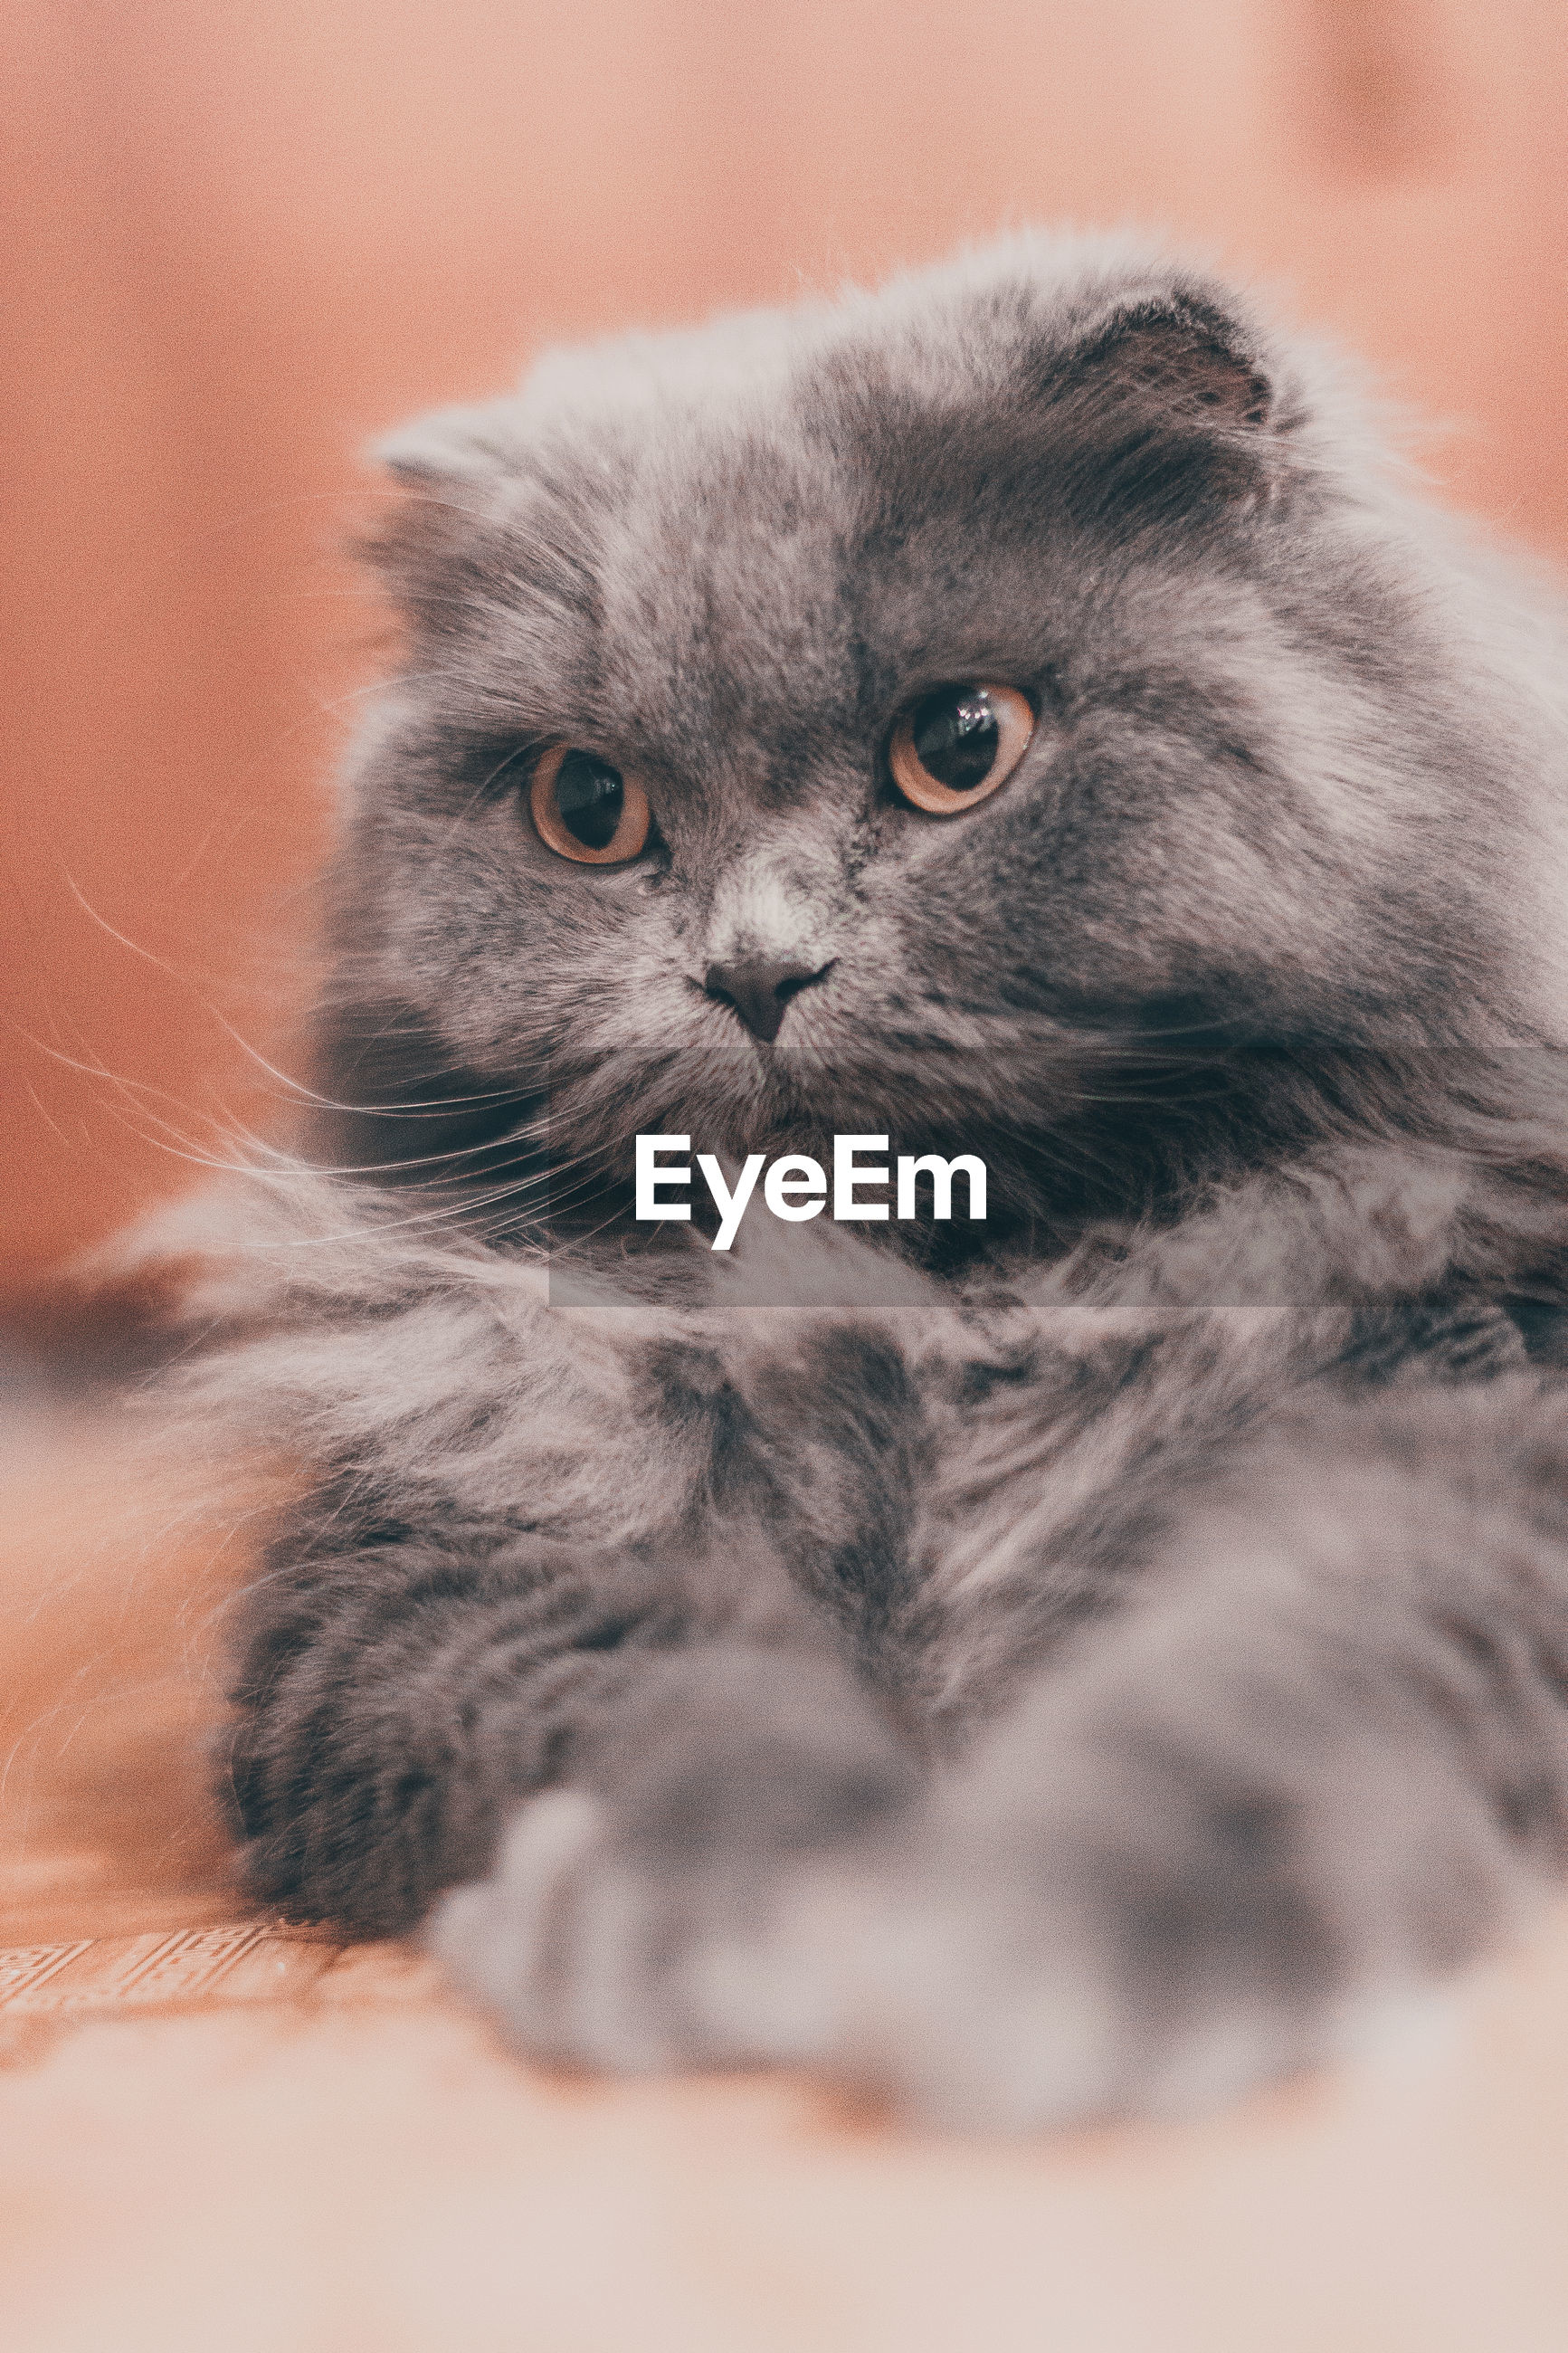 mammal, animal themes, domestic, animal, domestic cat, pets, domestic animals, one animal, cat, feline, vertebrate, indoors, selective focus, no people, close-up, looking at camera, portrait, relaxation, young animal, looking, whisker, animal head, persian cat, animal eye